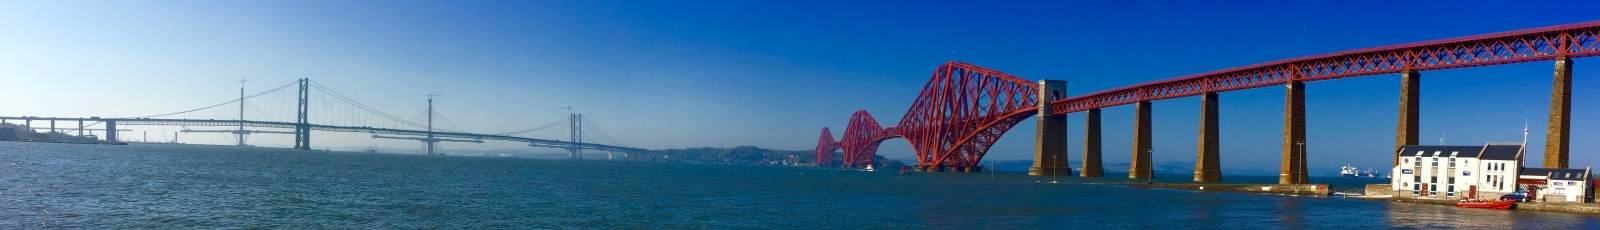 FirthOfForthBridge-special